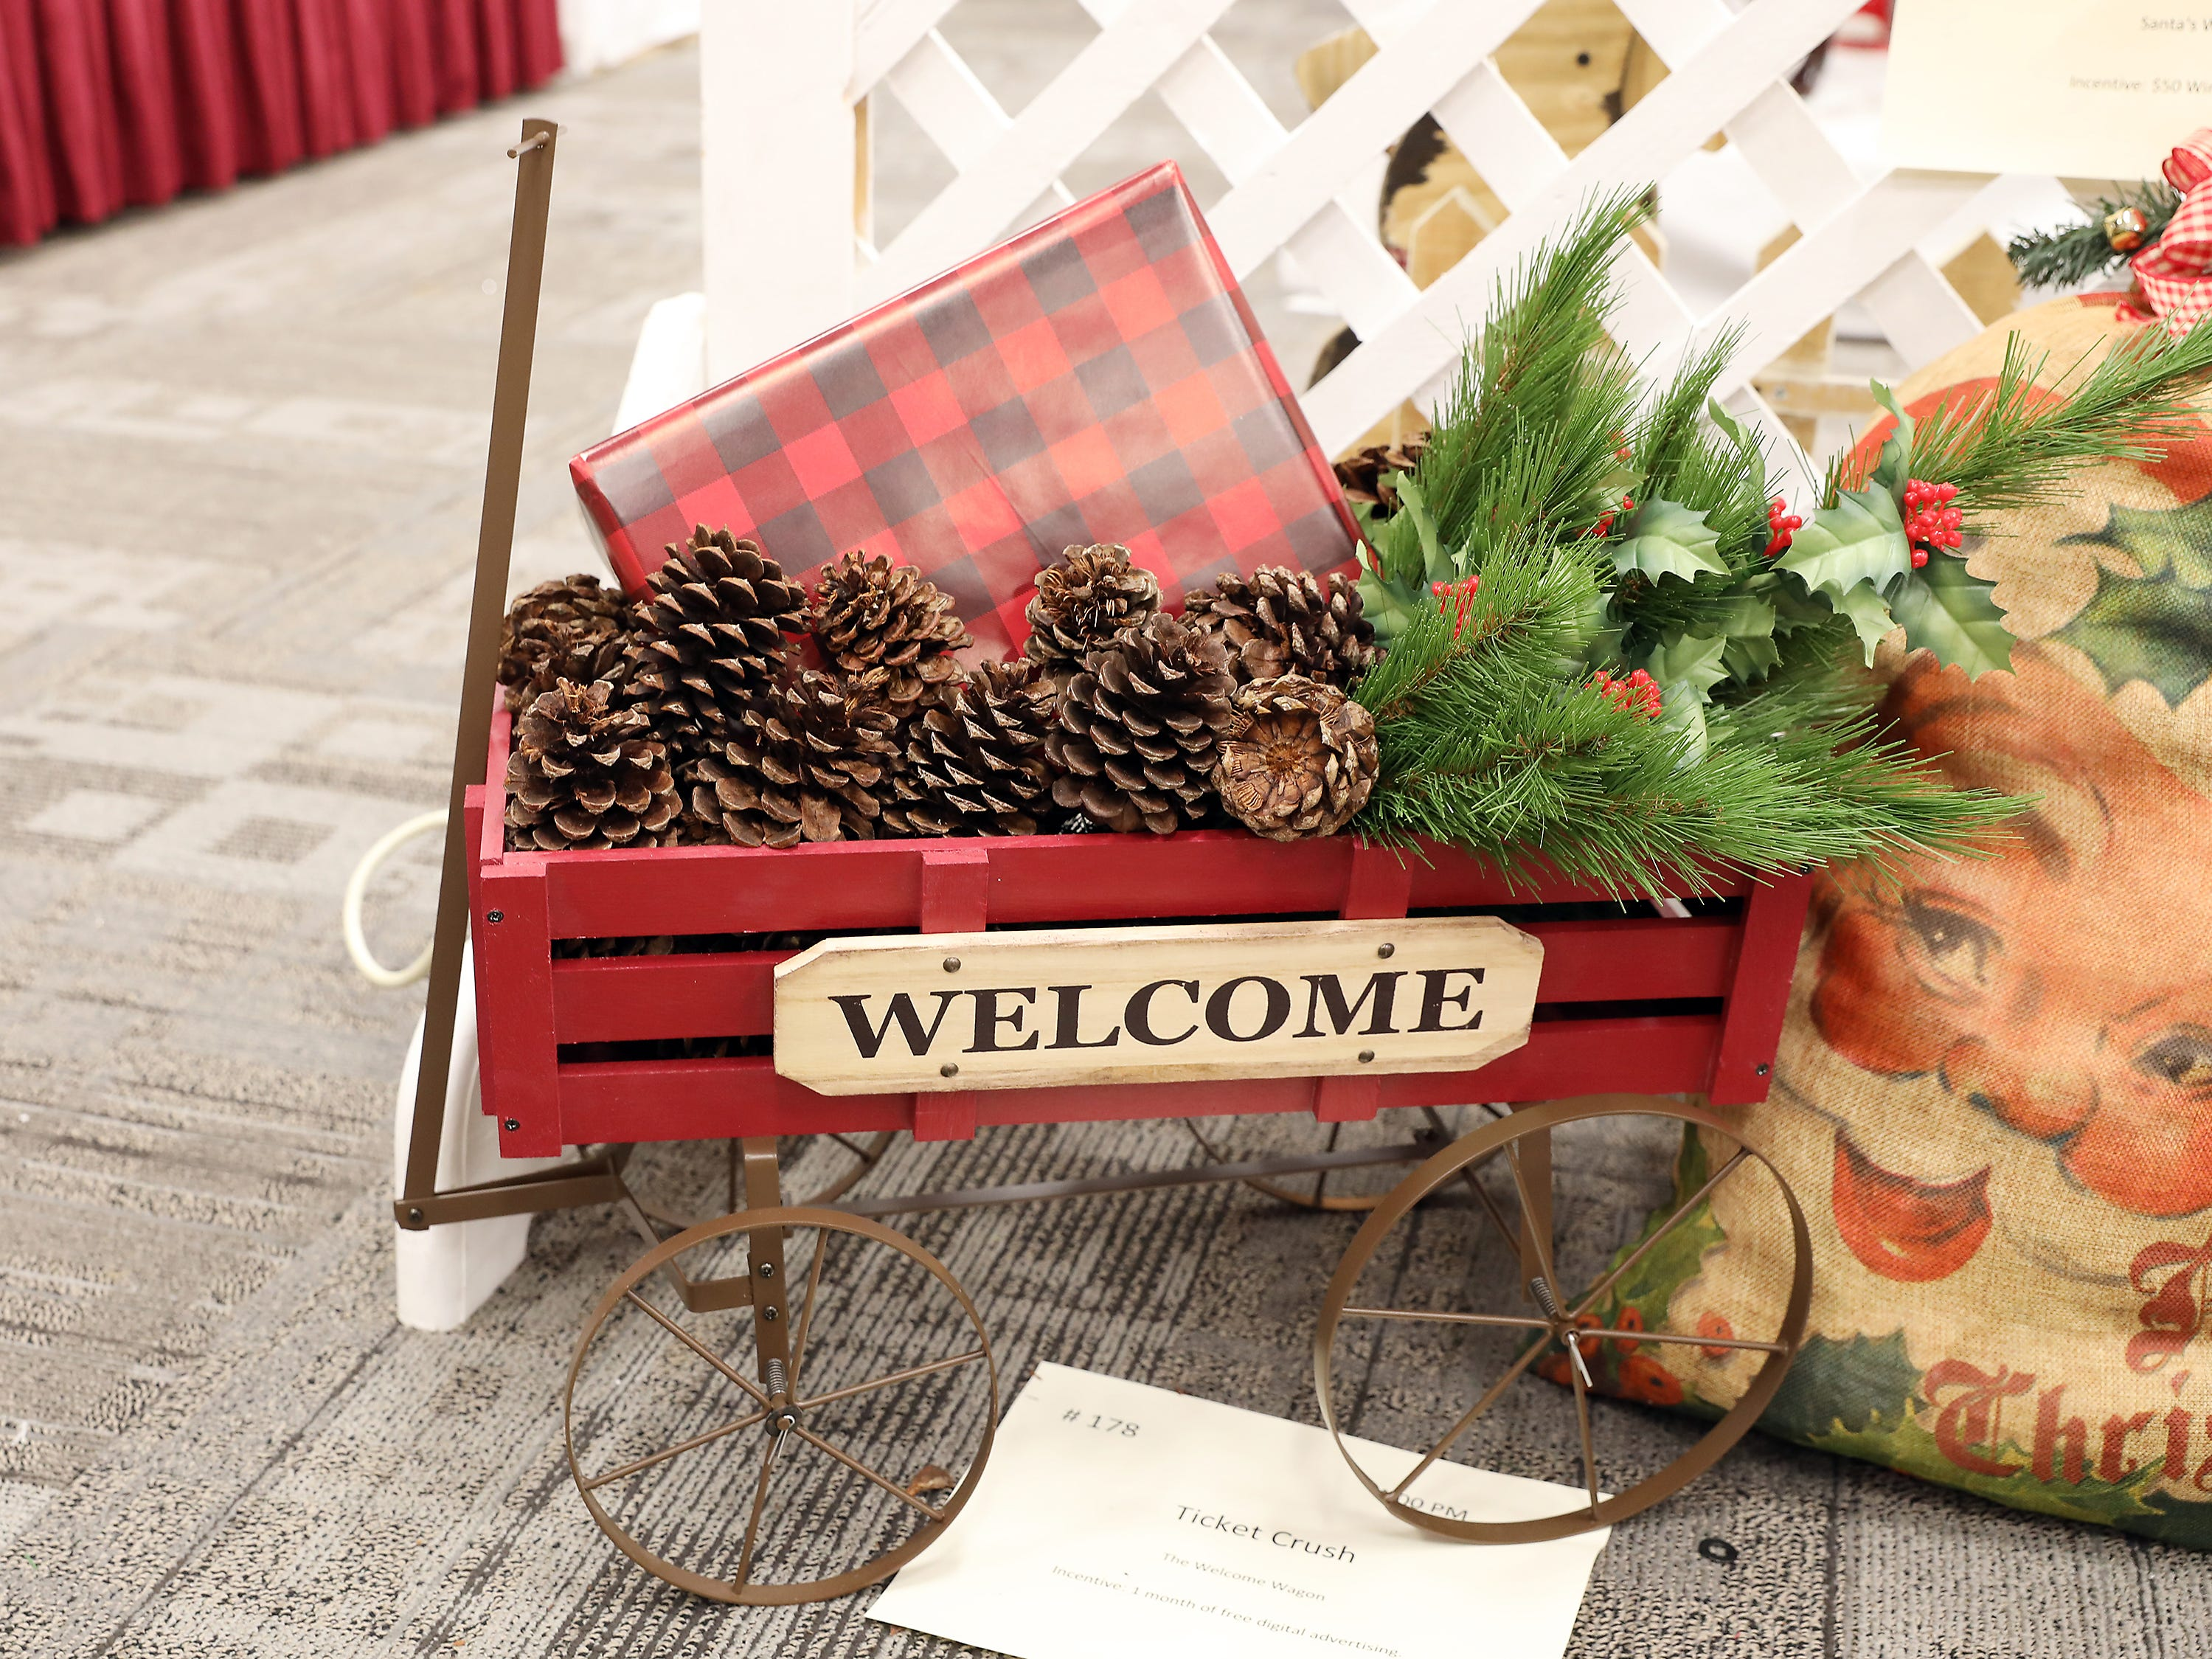 1784:00 PMTicket CrushOtherThe Welcome WagonA red holiday wagon filled with Christmas packages.  This wagon has a warm welcome sign to be used all year round.1 month of free digital advertising.